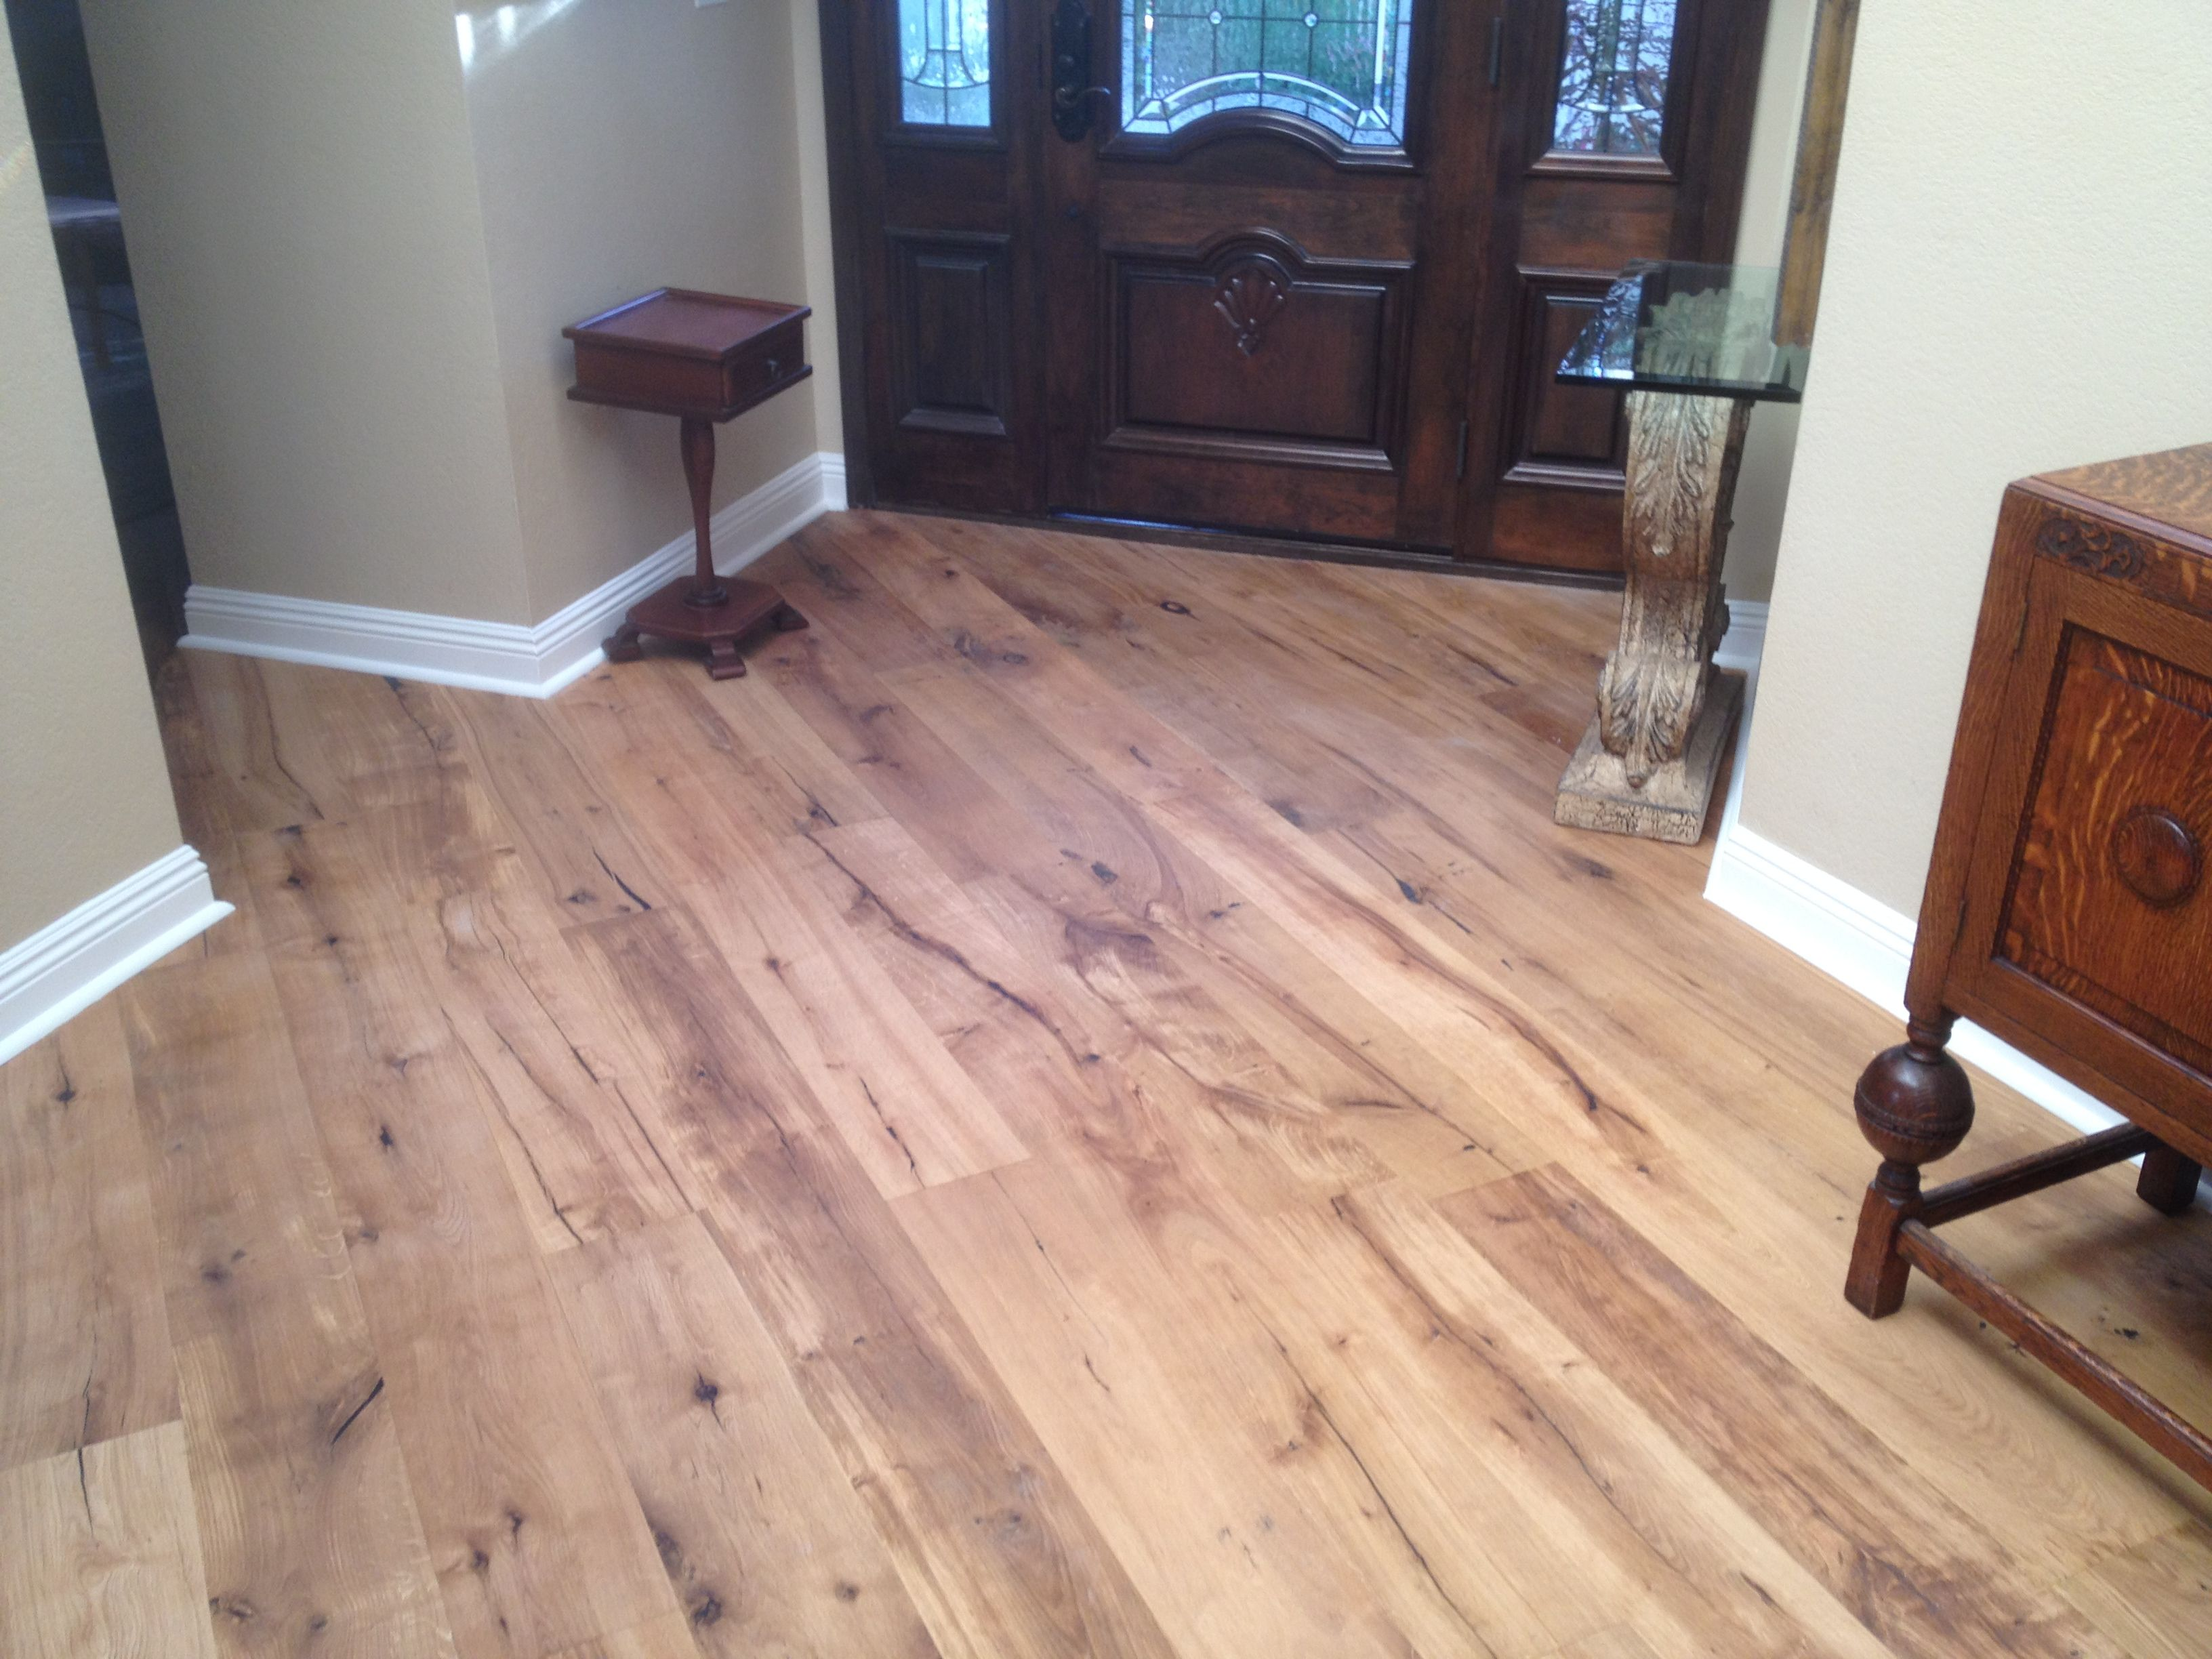 Tile That Looks Like Hardwood Floors | Like You Got A New Home With Carpet,